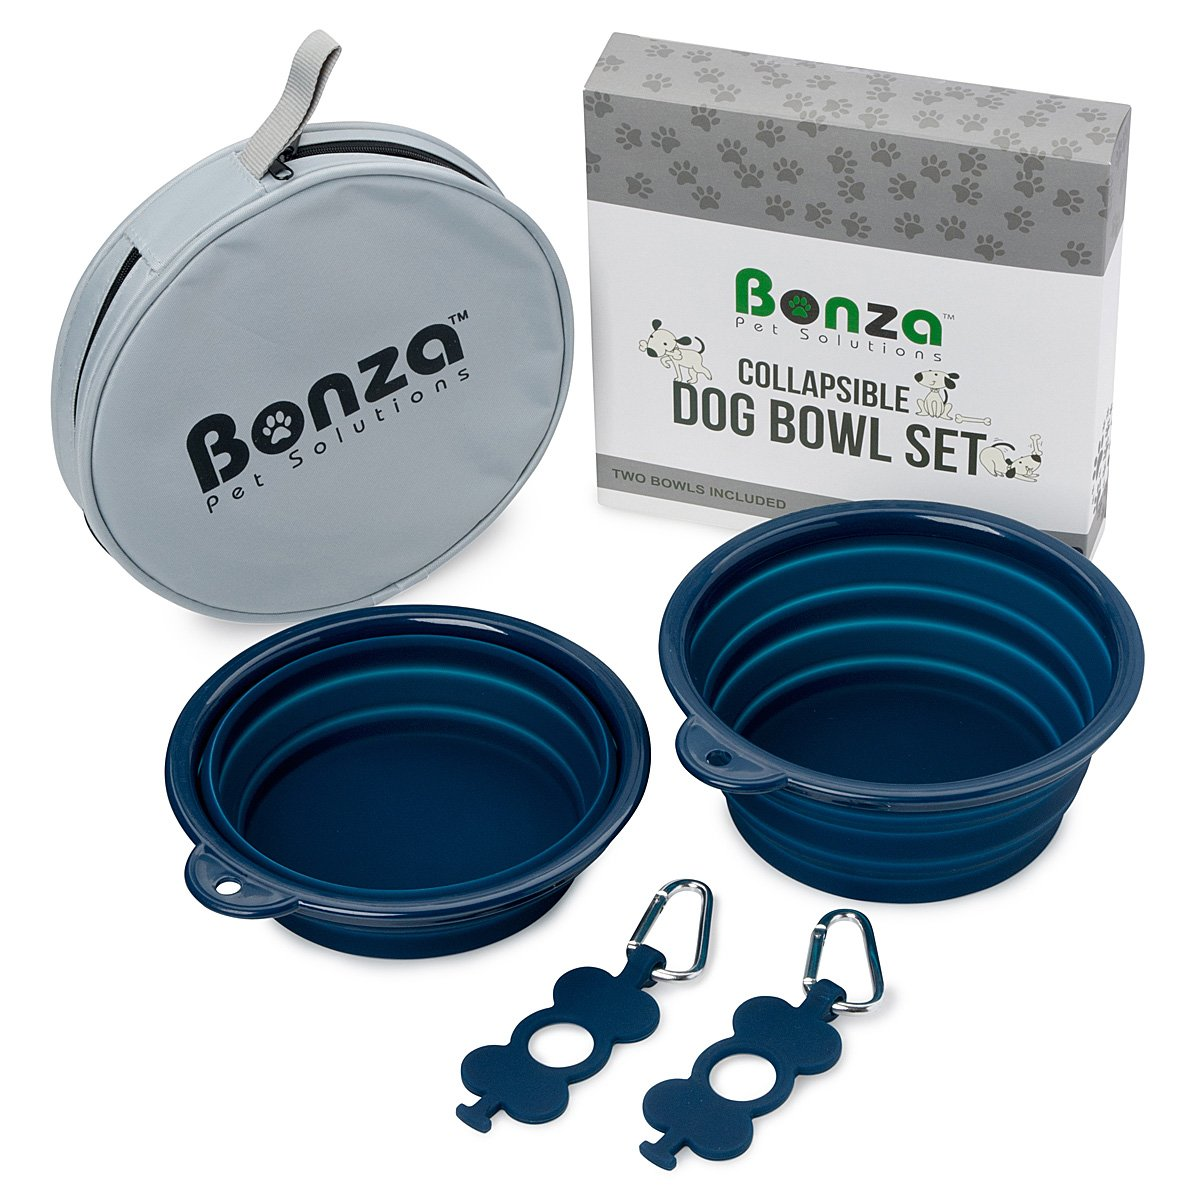 Bonza Large Collapsible Dog Bowls, Twin Pak 5 Cup, 7'' Diameter, Portable Dog Water Bowls for Medium to Large Pets, Lightweight, Sturdy Food Safe Premium Quality Travel Pet Bowl Solution